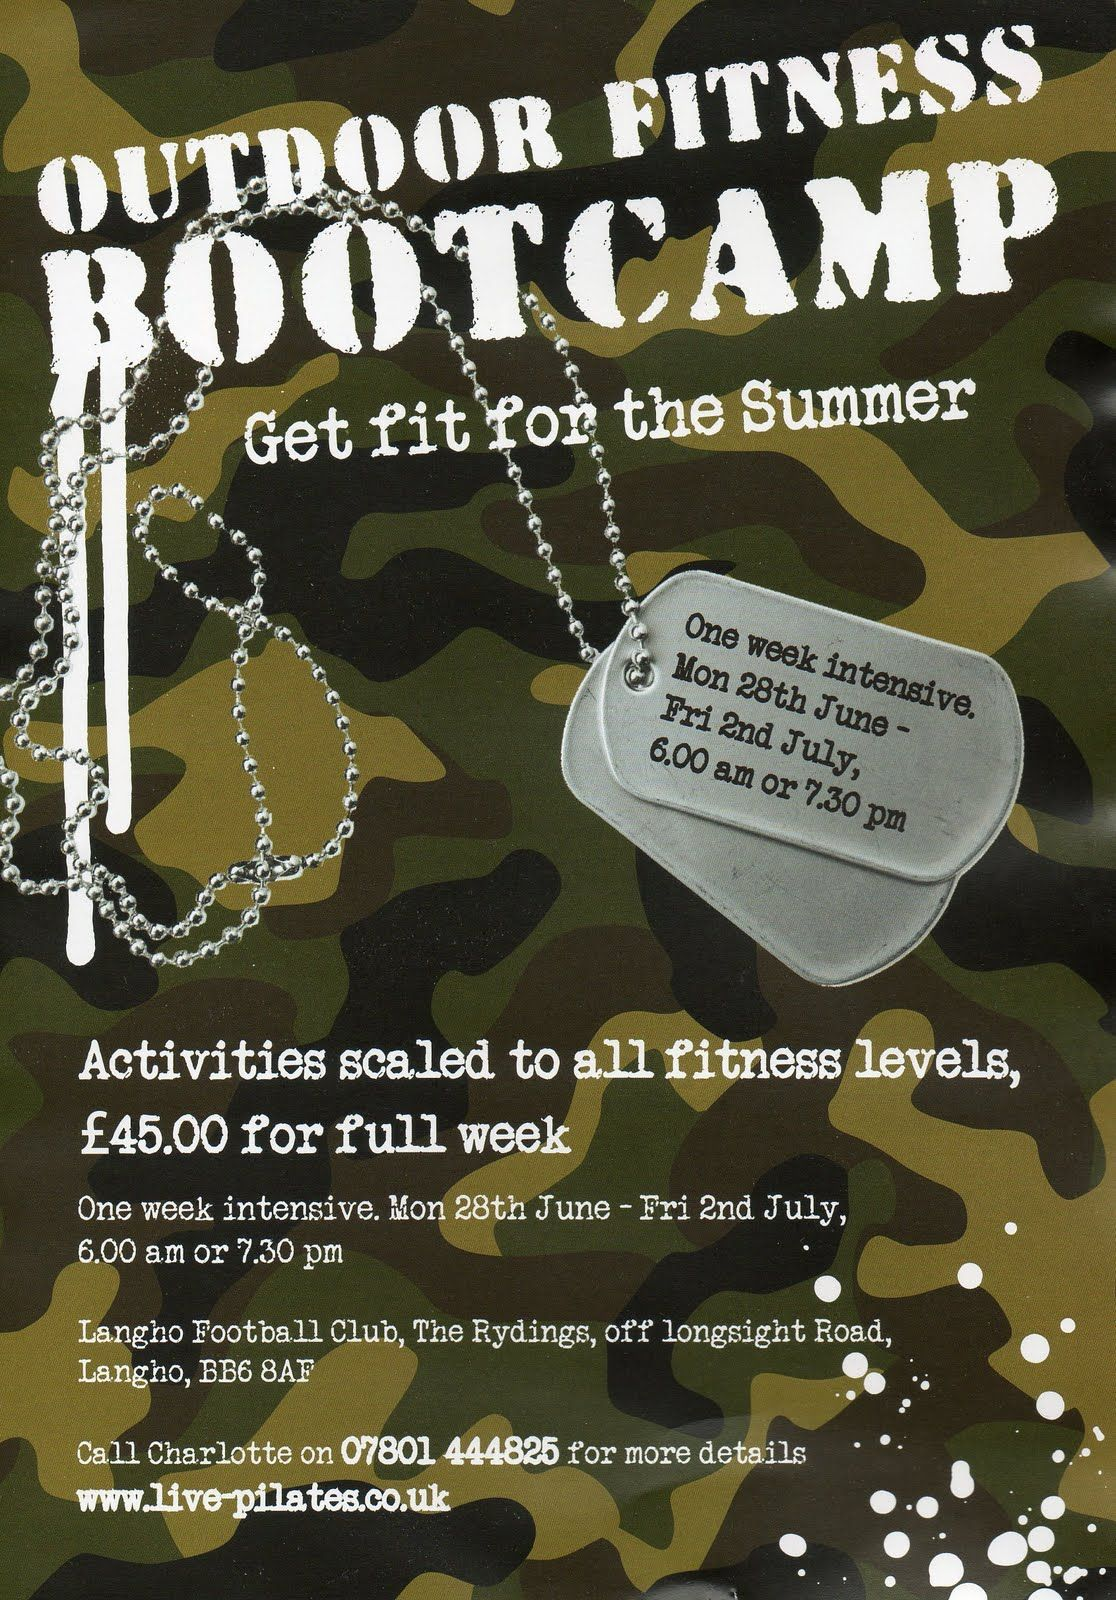 Fitness Boot Camp Flyer Template You Can Get More Details By Clicking On The Image Campingtips Camping Advice Boot Camp Workout Flyer